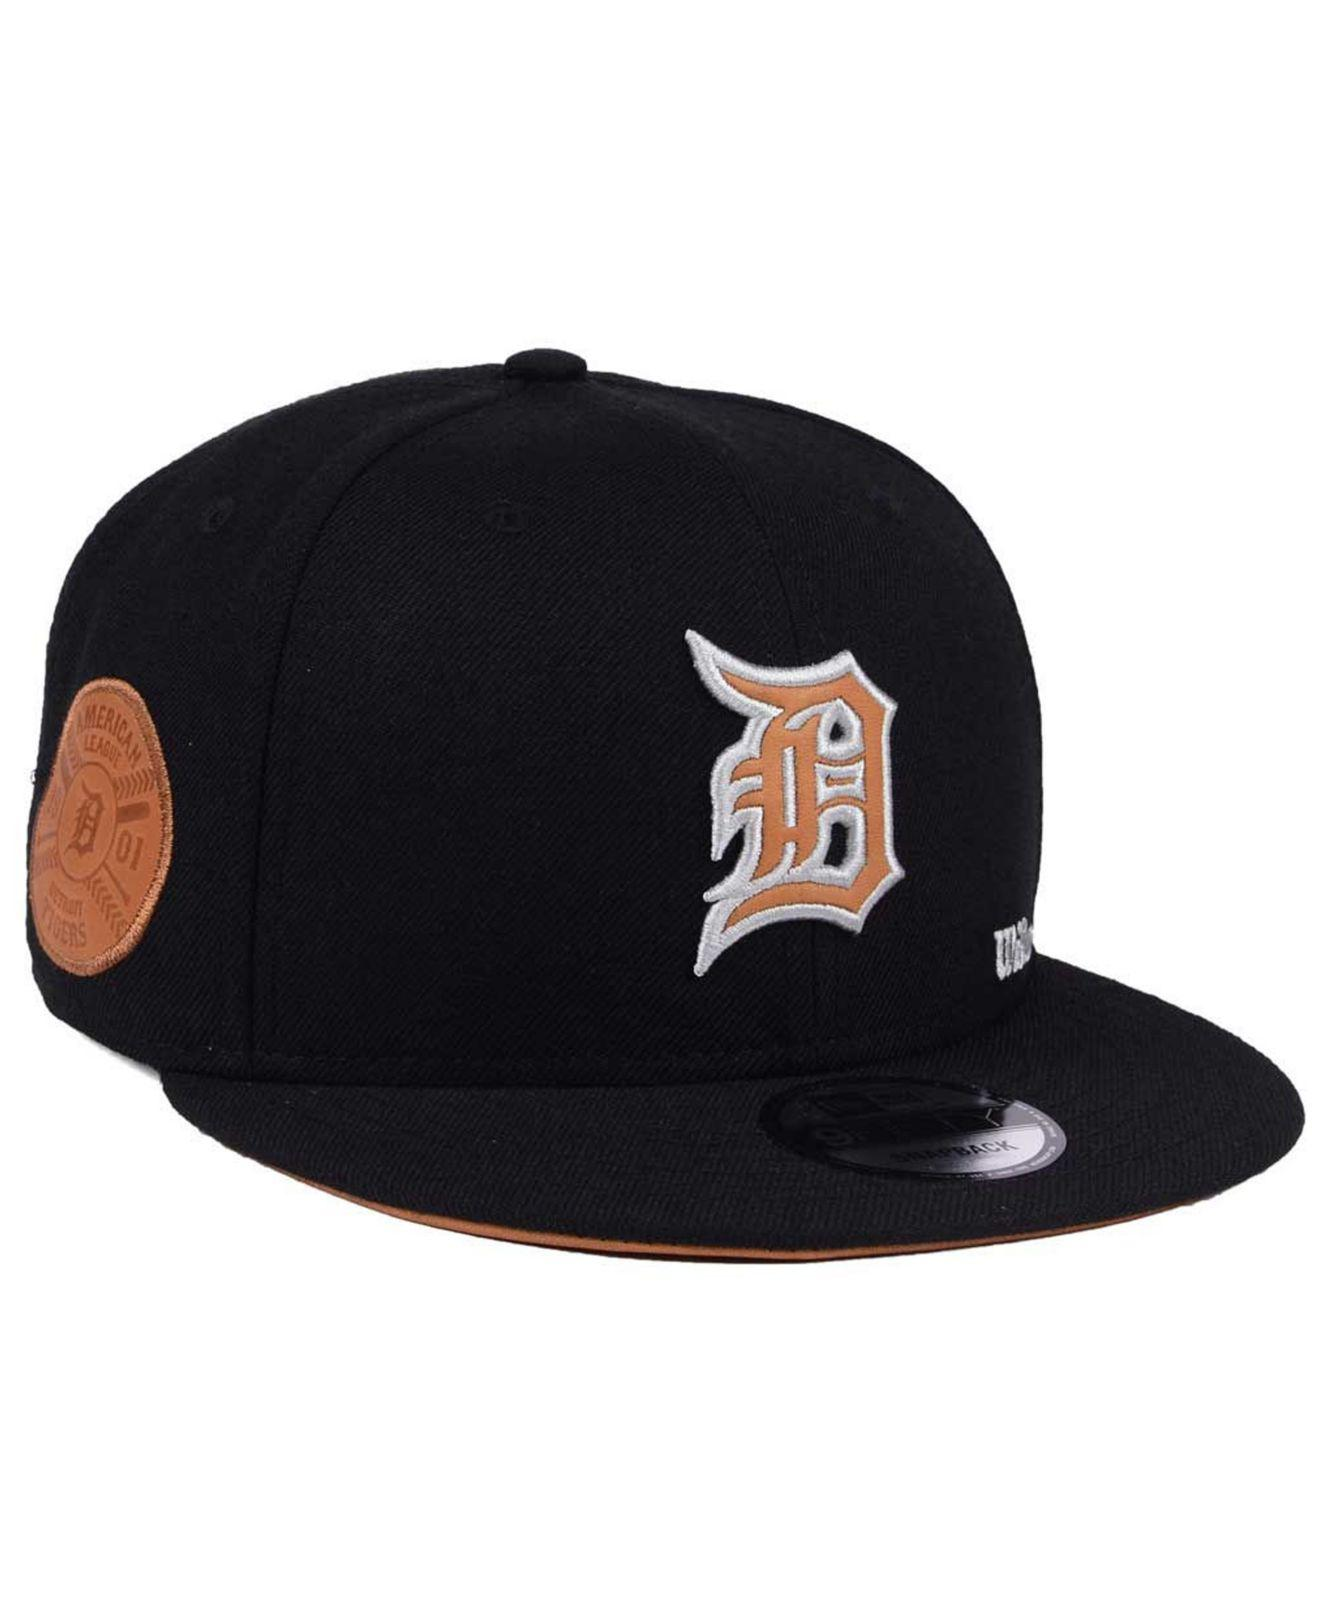 check out 0c1b4 fbbba ... best lyst ktz detroit tigers x wilson side hit 9fifty snapback cap in  9ffa8 def2a